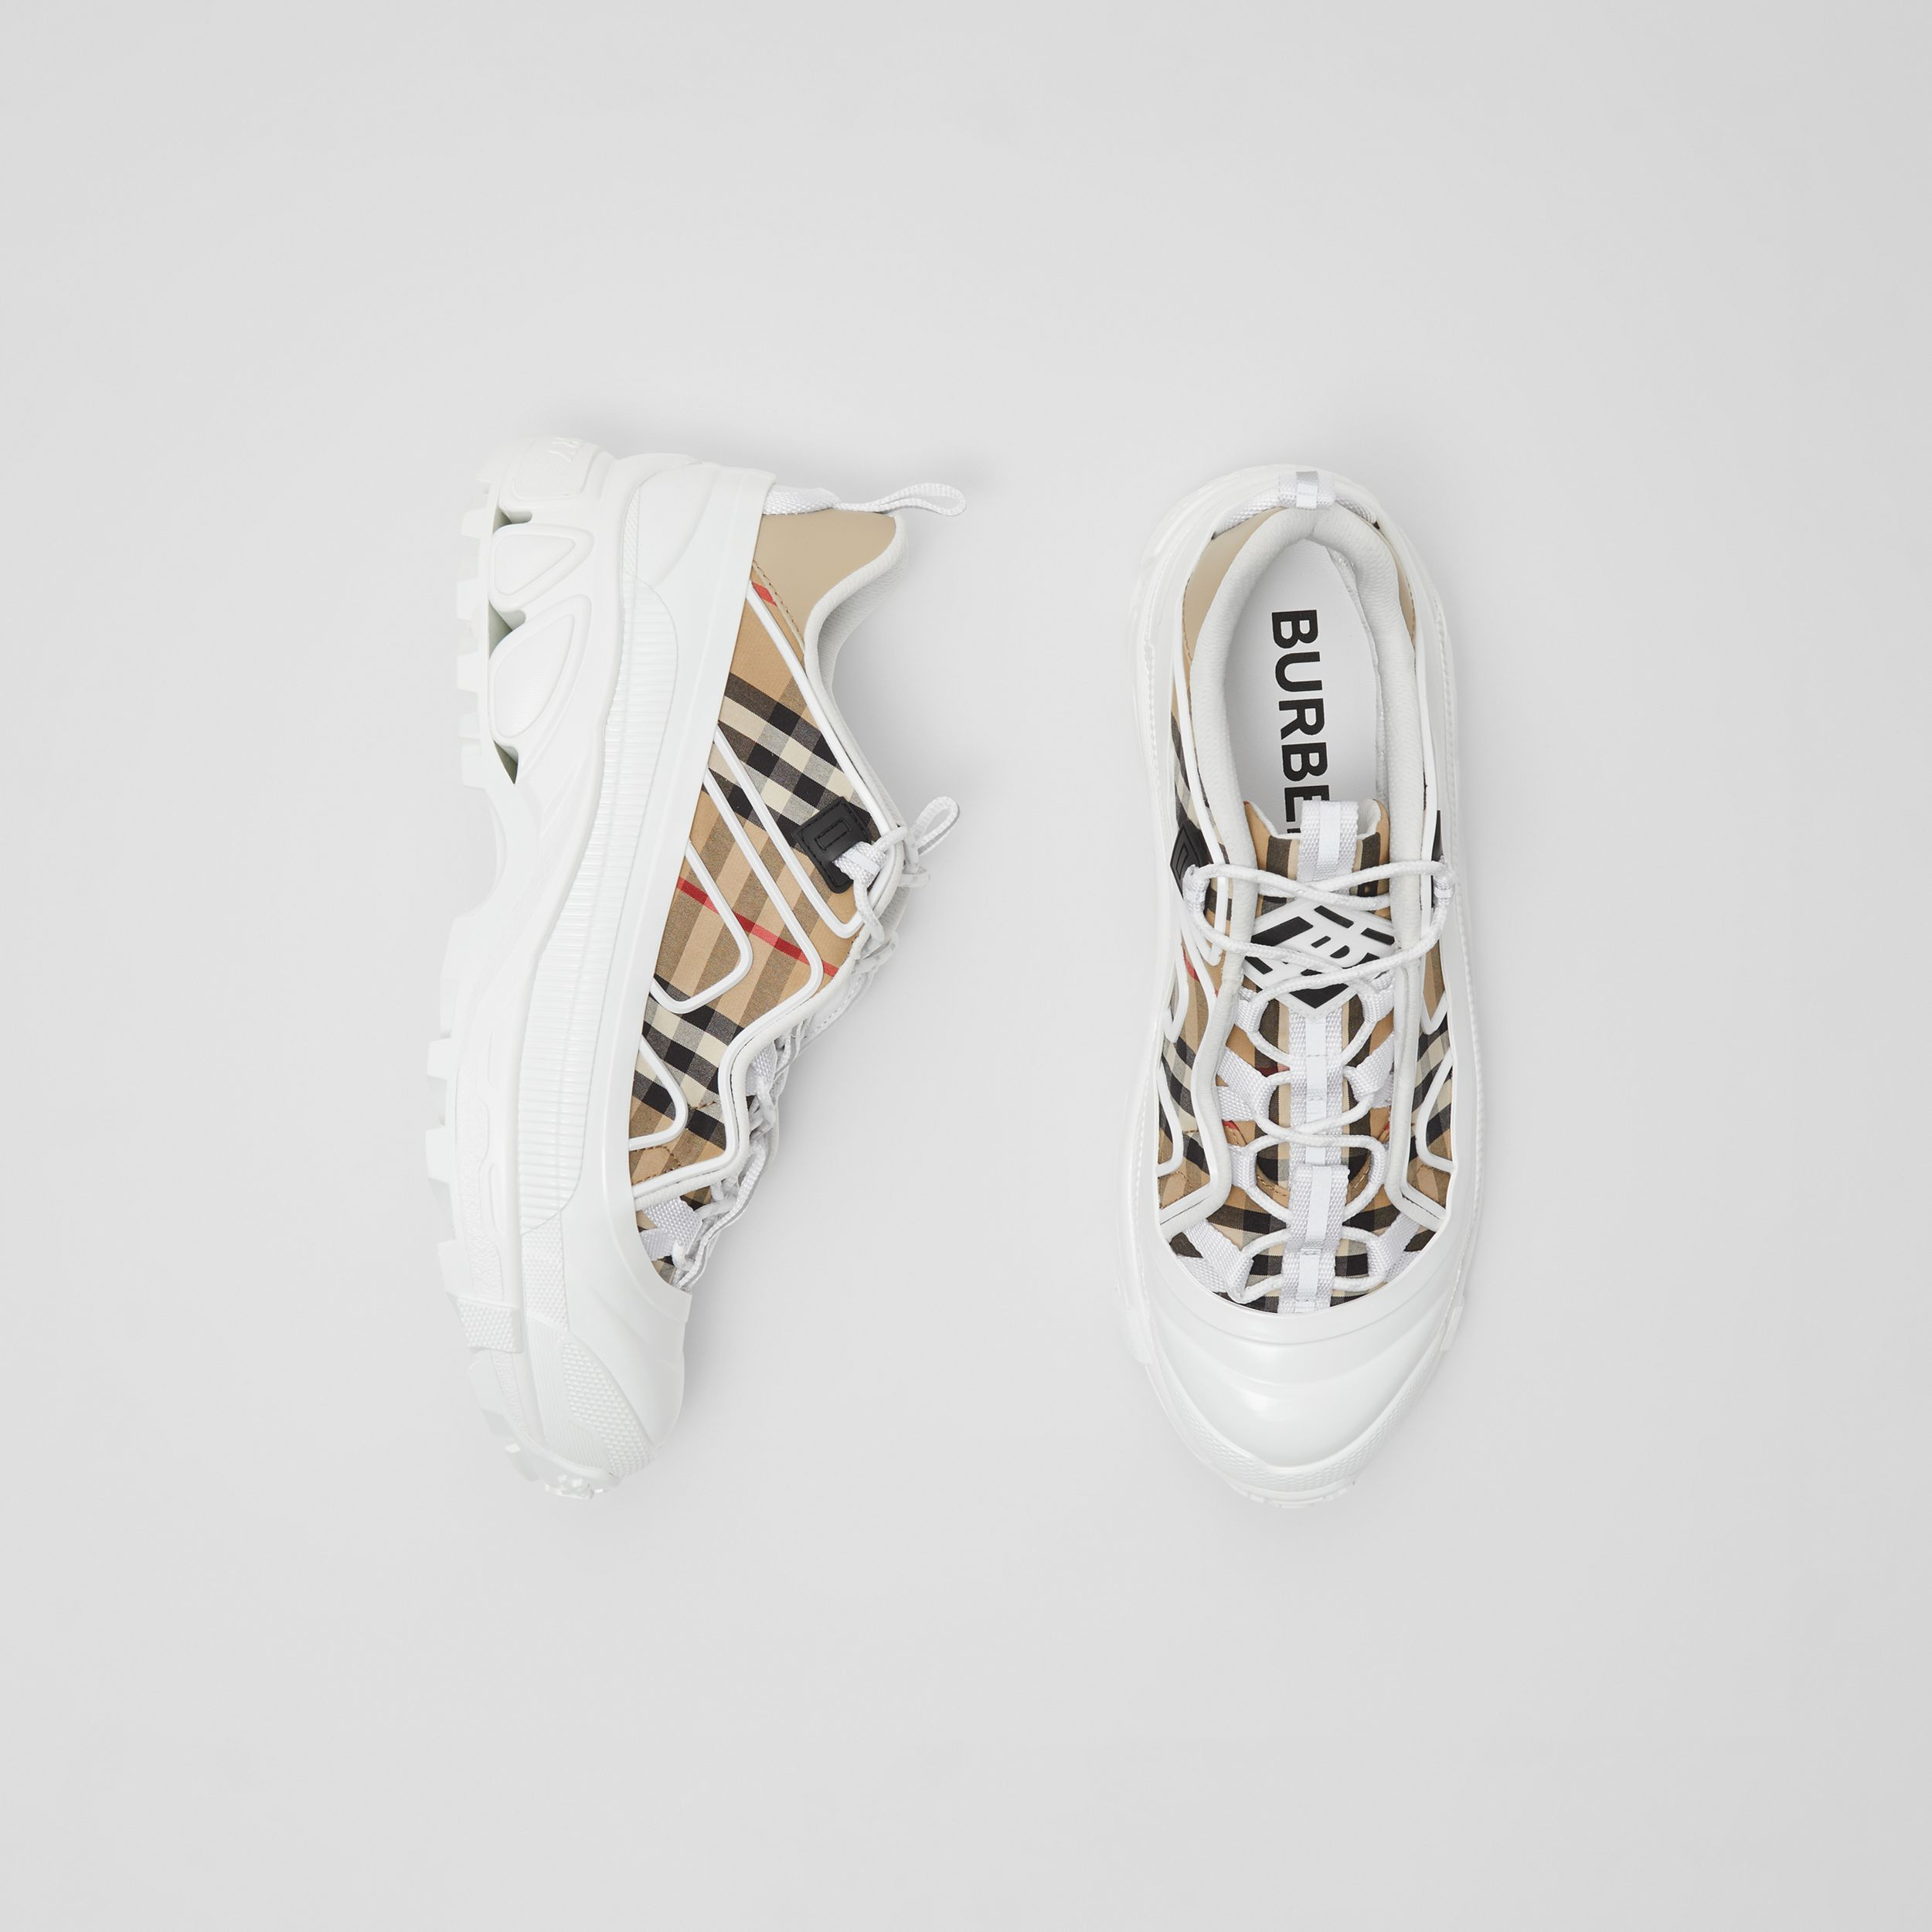 Vintage Check Cotton And Leather Arthur Sneakers in Archive Beige/white | Burberry United States - 1